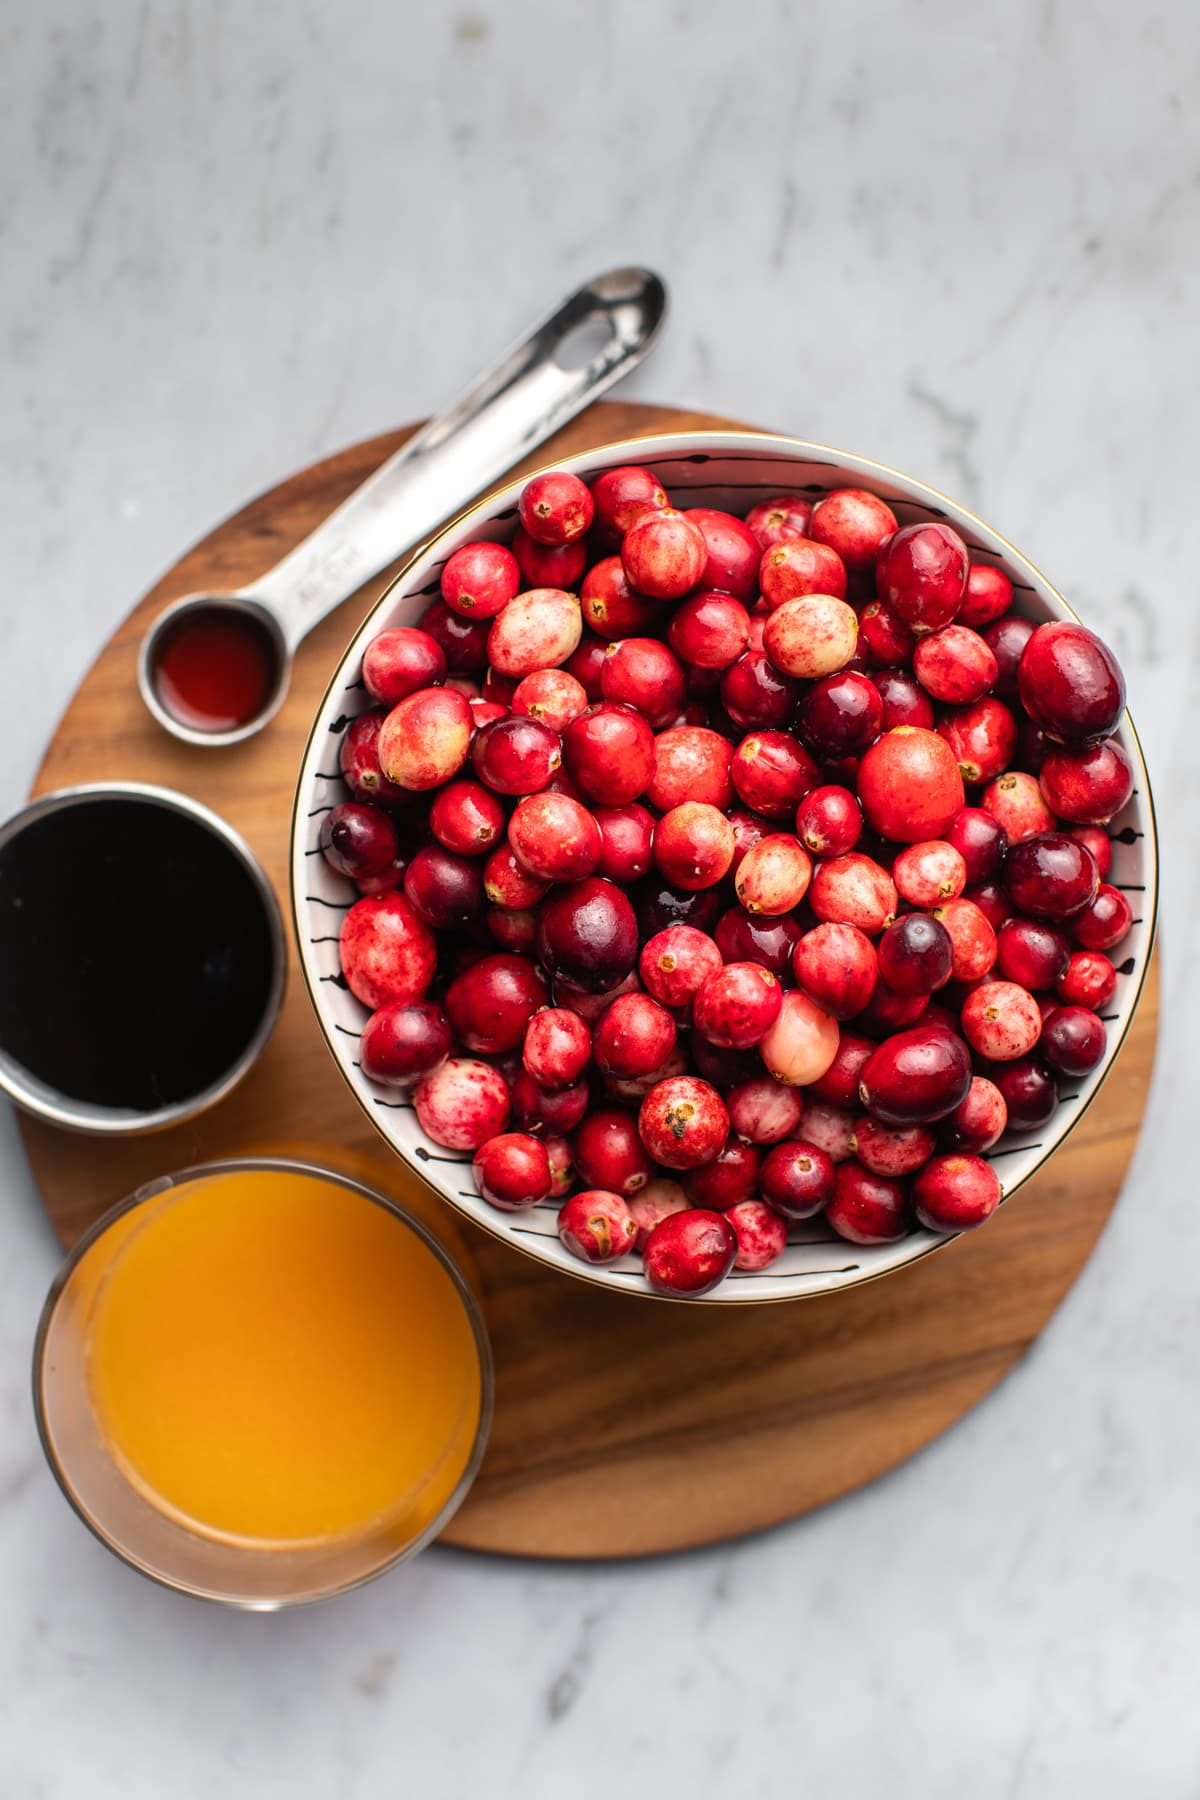 ingredients for cranberry sauce in small bowls on wooden cutting board